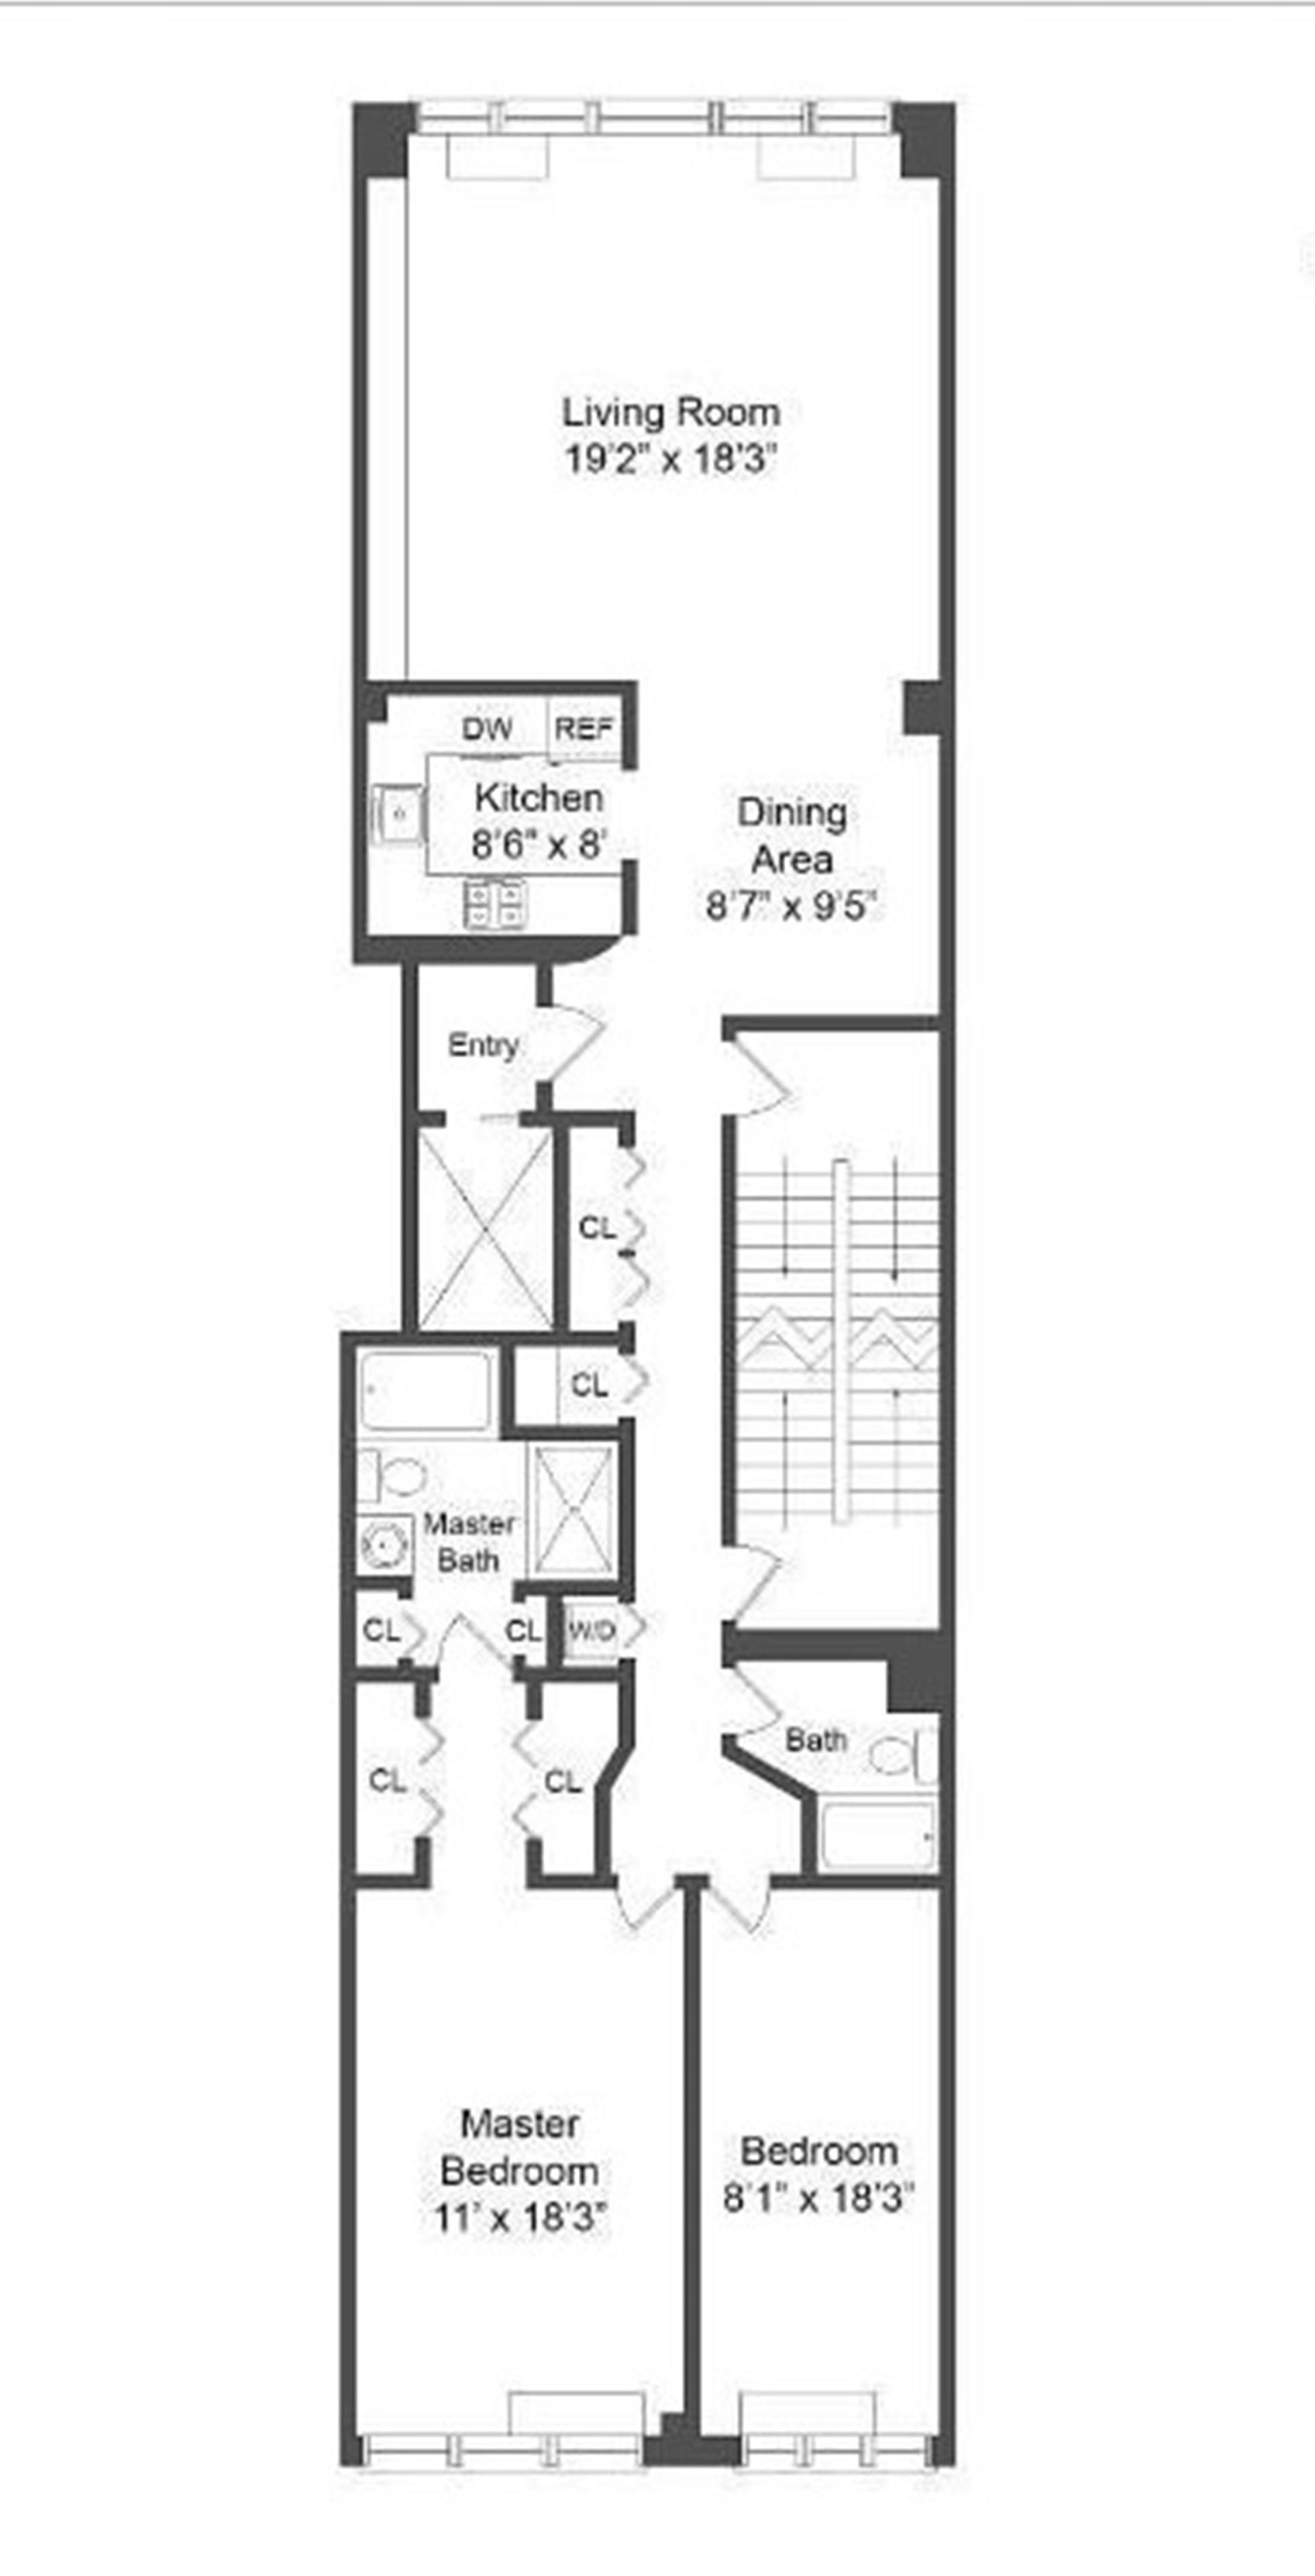 Floor plan of 177 East 79 Street Owners, 177 East 79th St, 6A - Upper East Side, New York